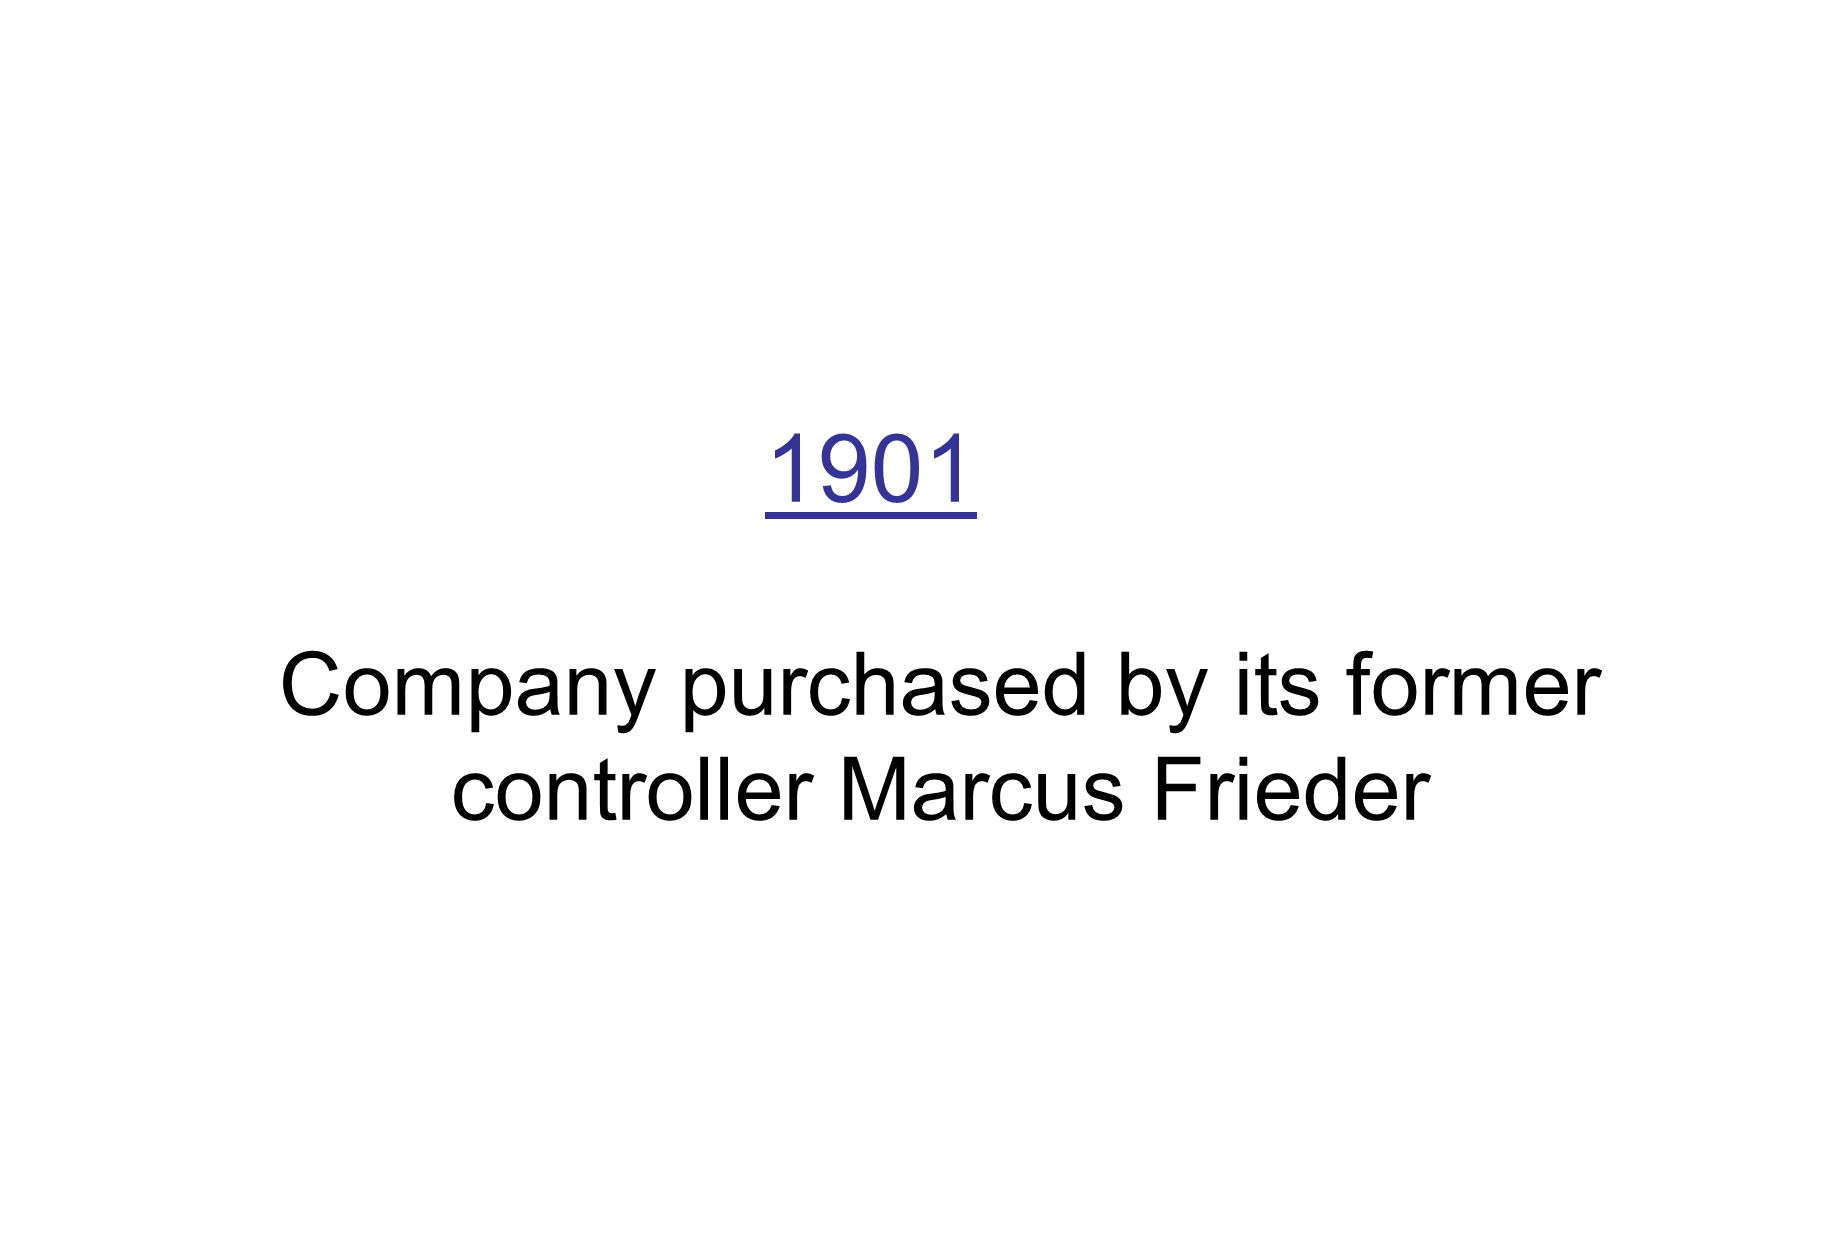 1901 Company purchased by its former controller Marcus Frieder